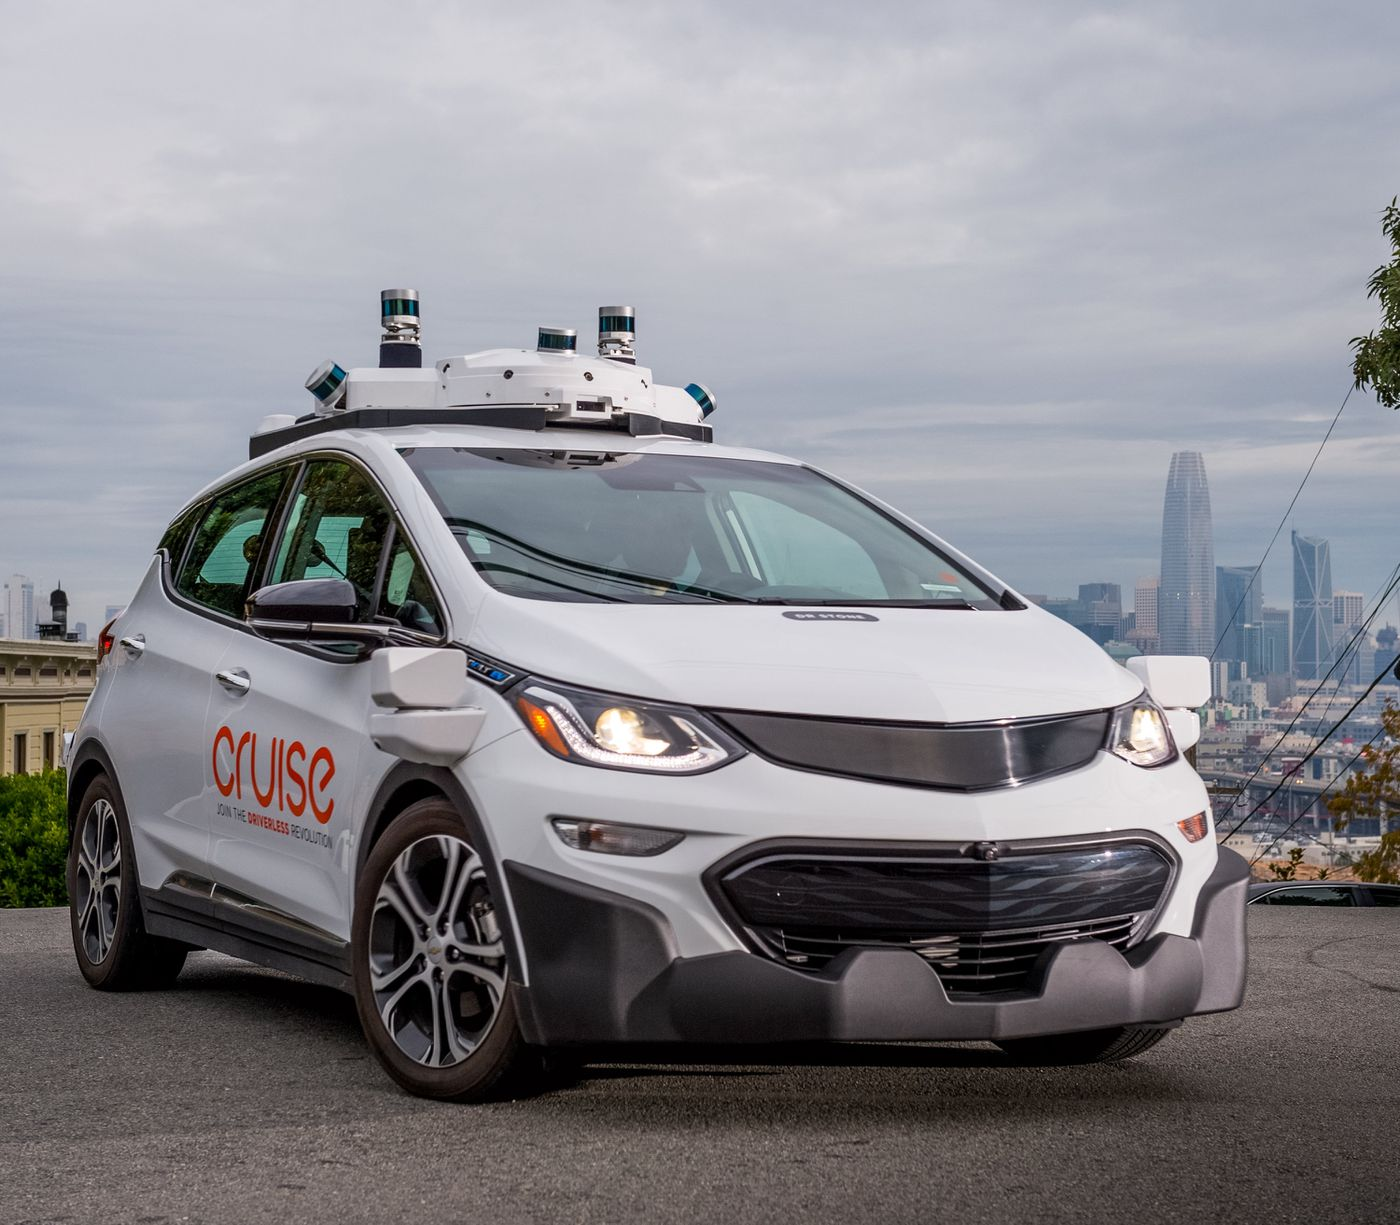 GM will make an autonomous car without steering wheel or pedals by